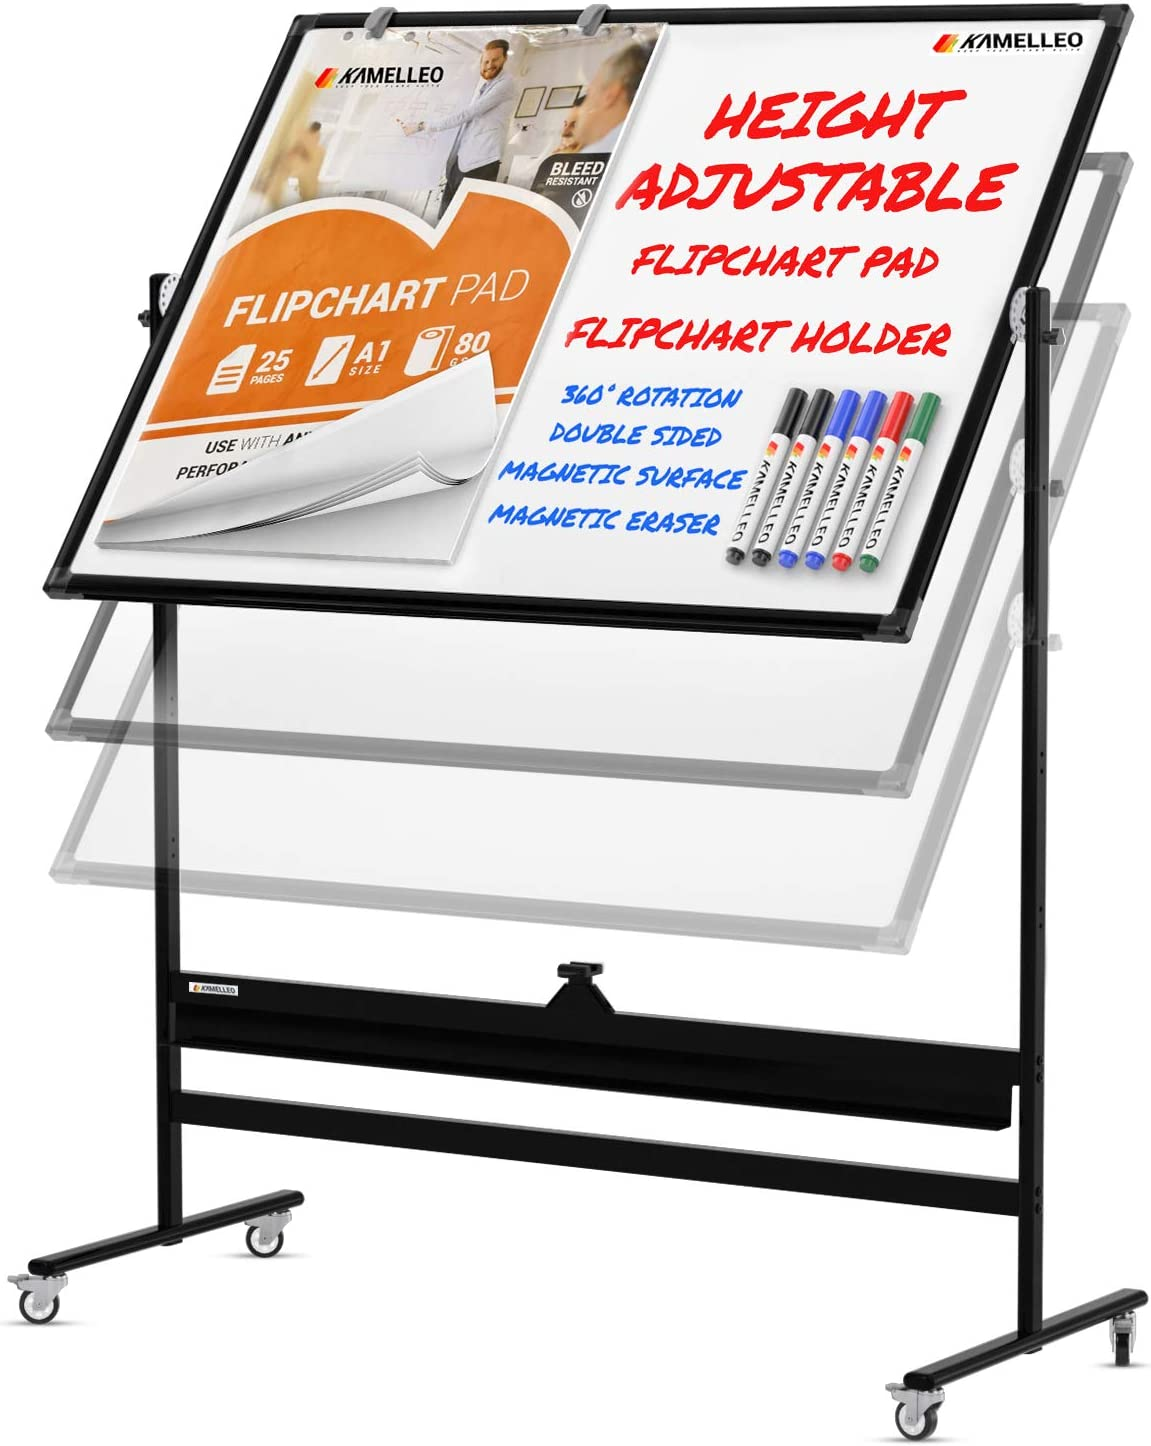 Mobile Whiteboard - 46x32 Large Height Adjust 360° Rolling Double Sided Dry Erase Board, Magnetic White Board on Wheels, Office Classroom Portable Easel with Stand, Flip Chart Holders and Pad | Black